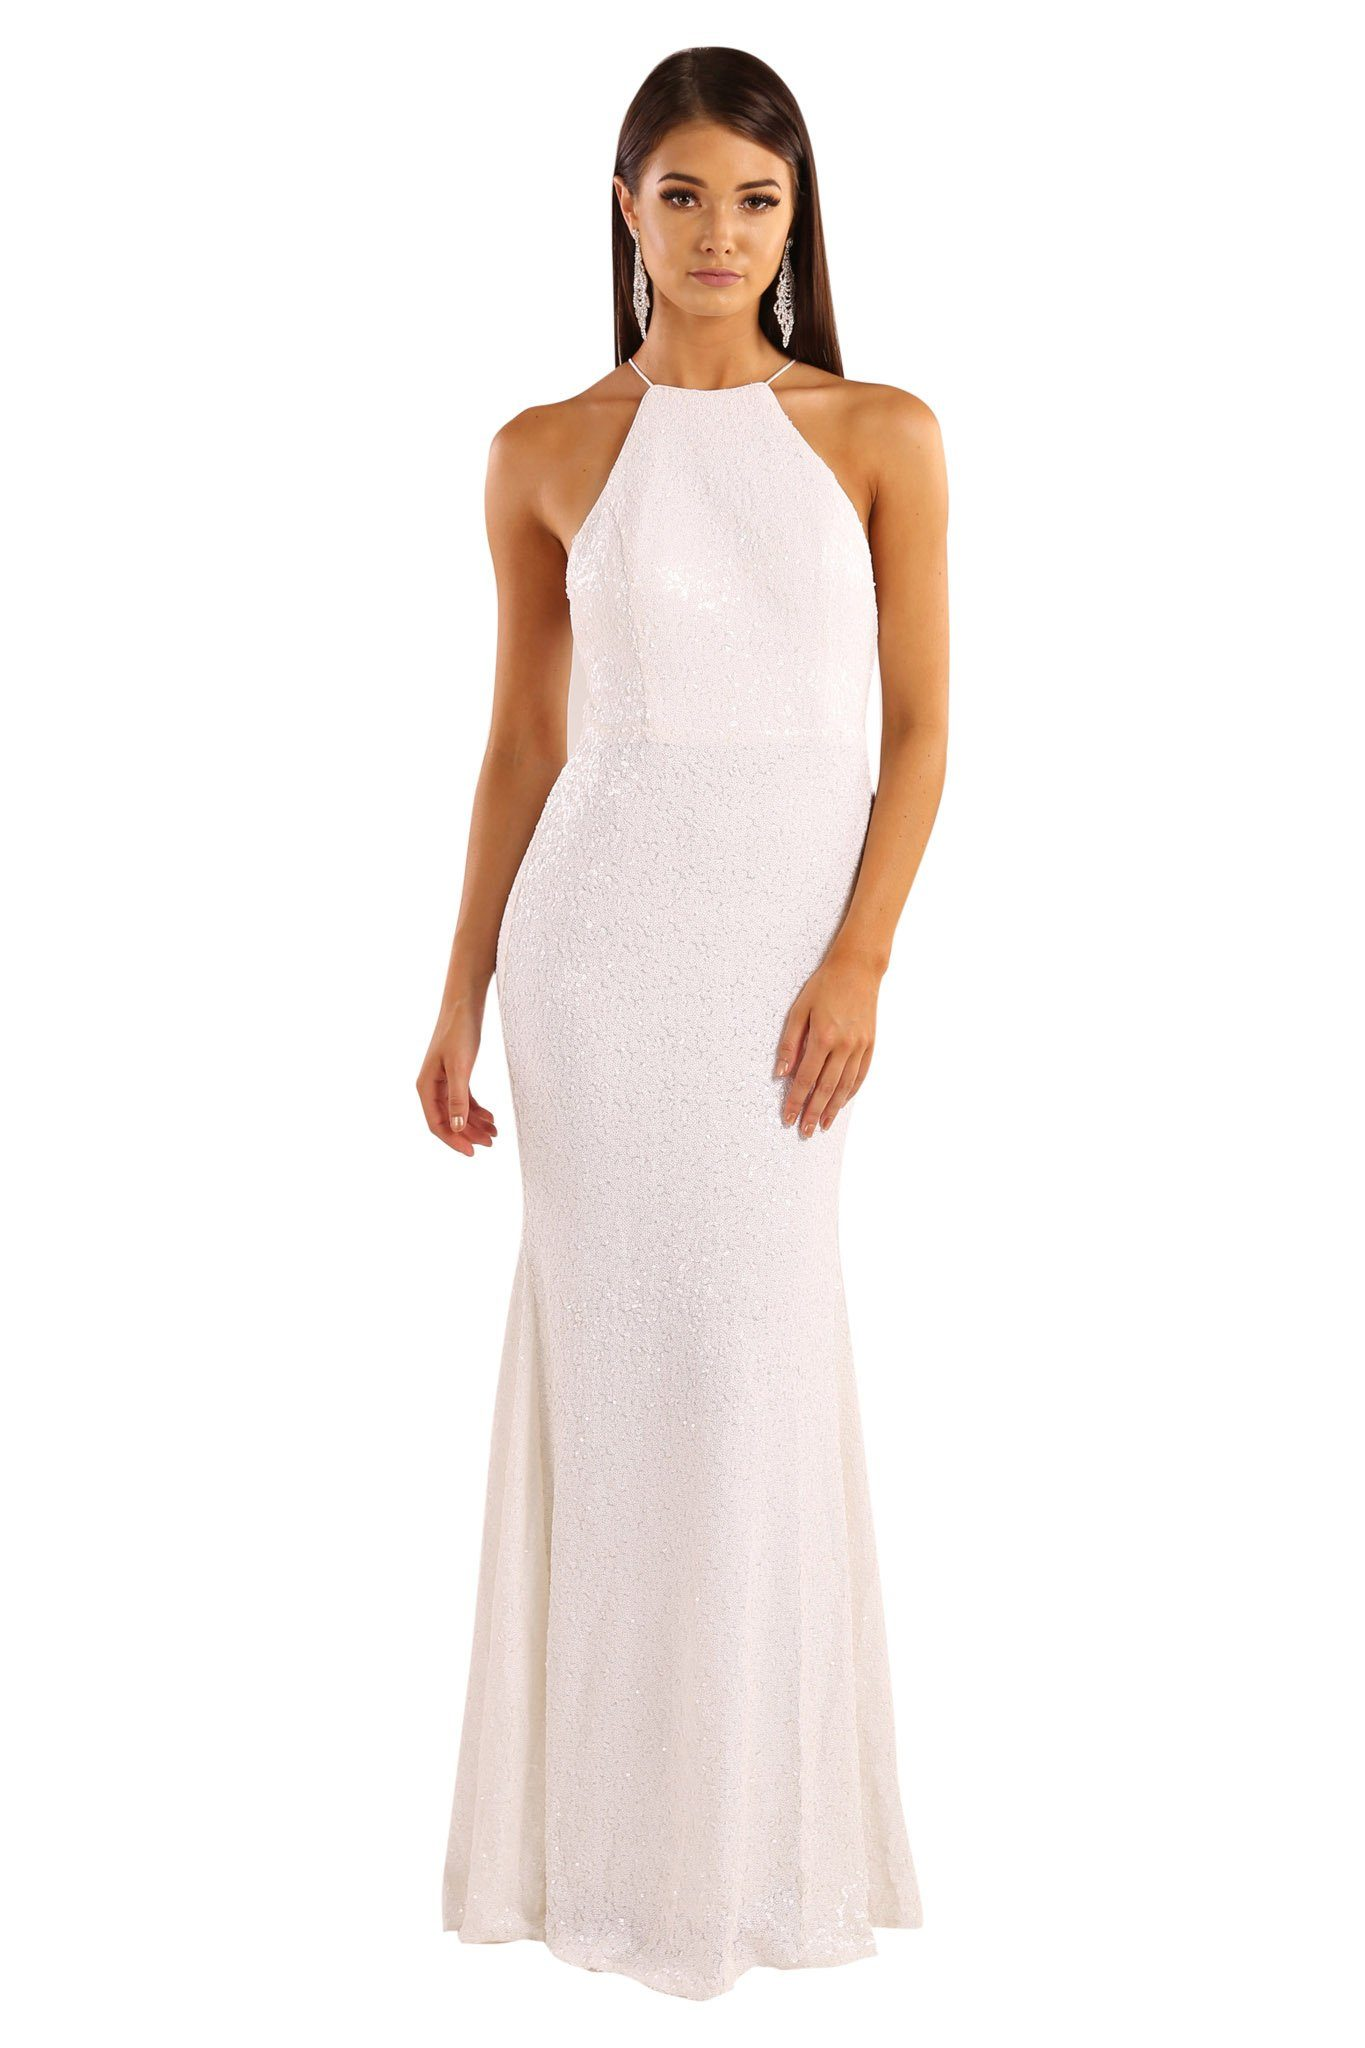 White sequin sleeveless fitted maxi floor length dress features lace-up on open back design